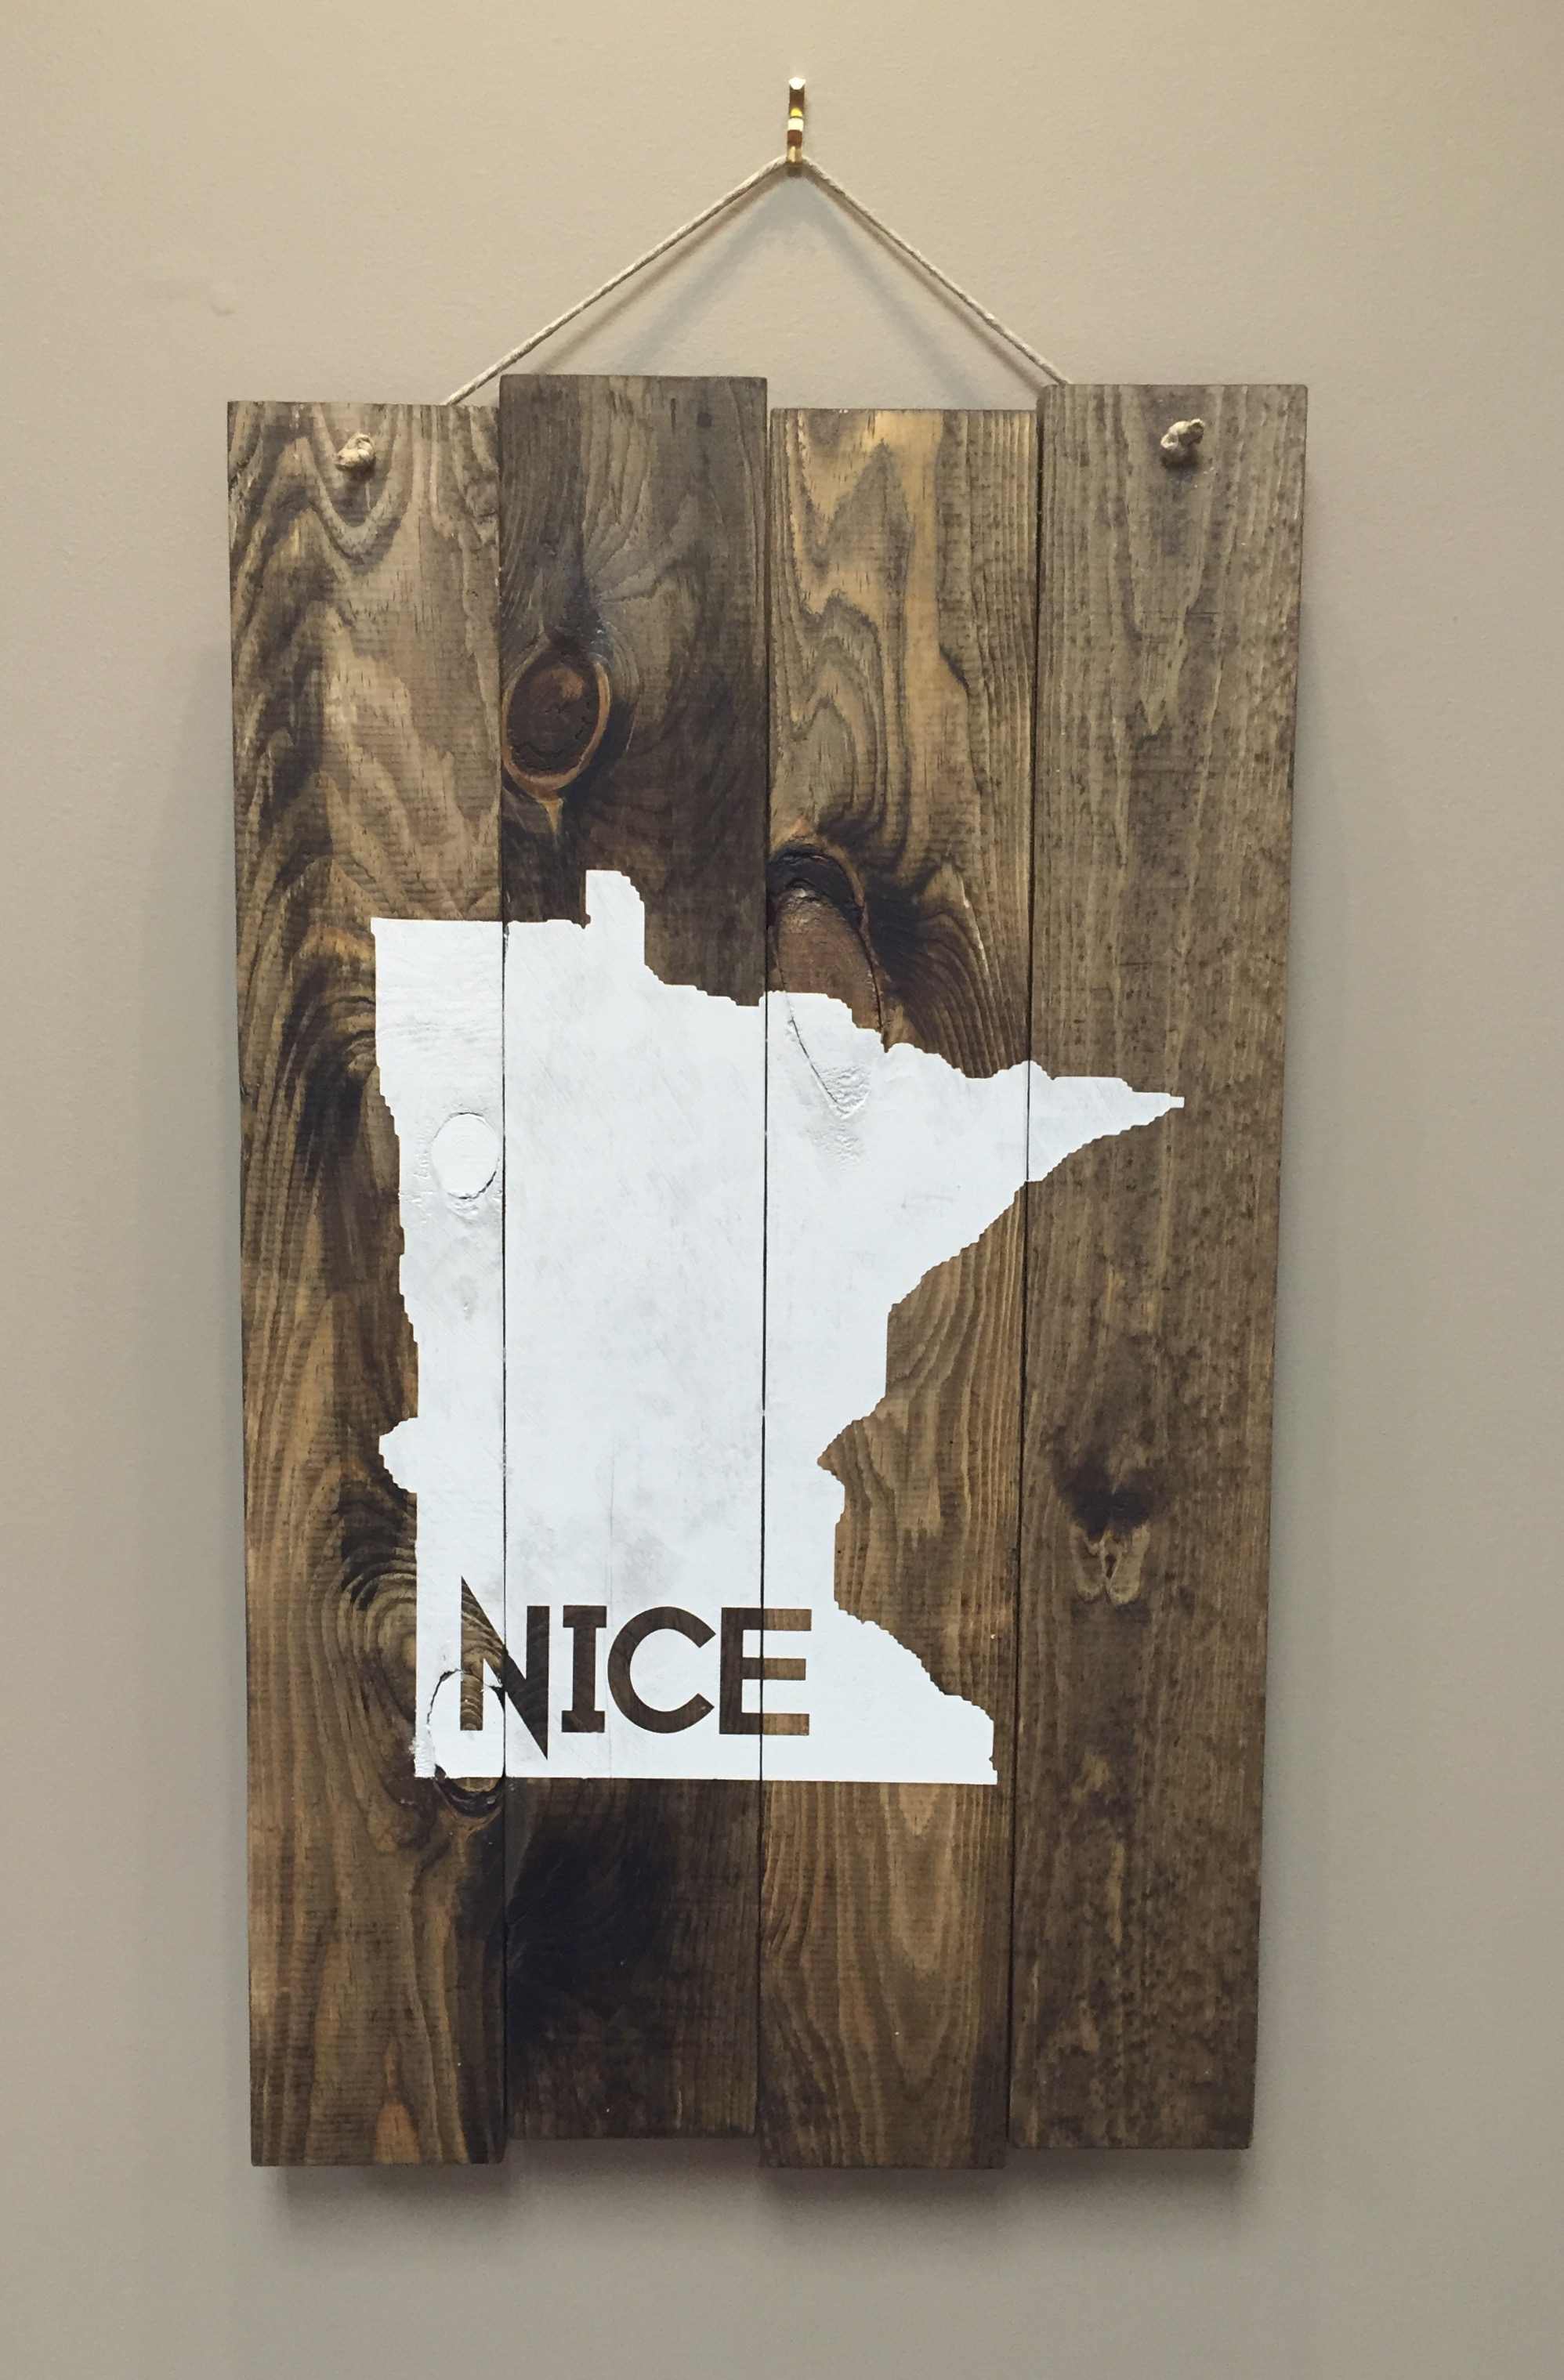 MN NICE or MN HOME (BEGINNER)